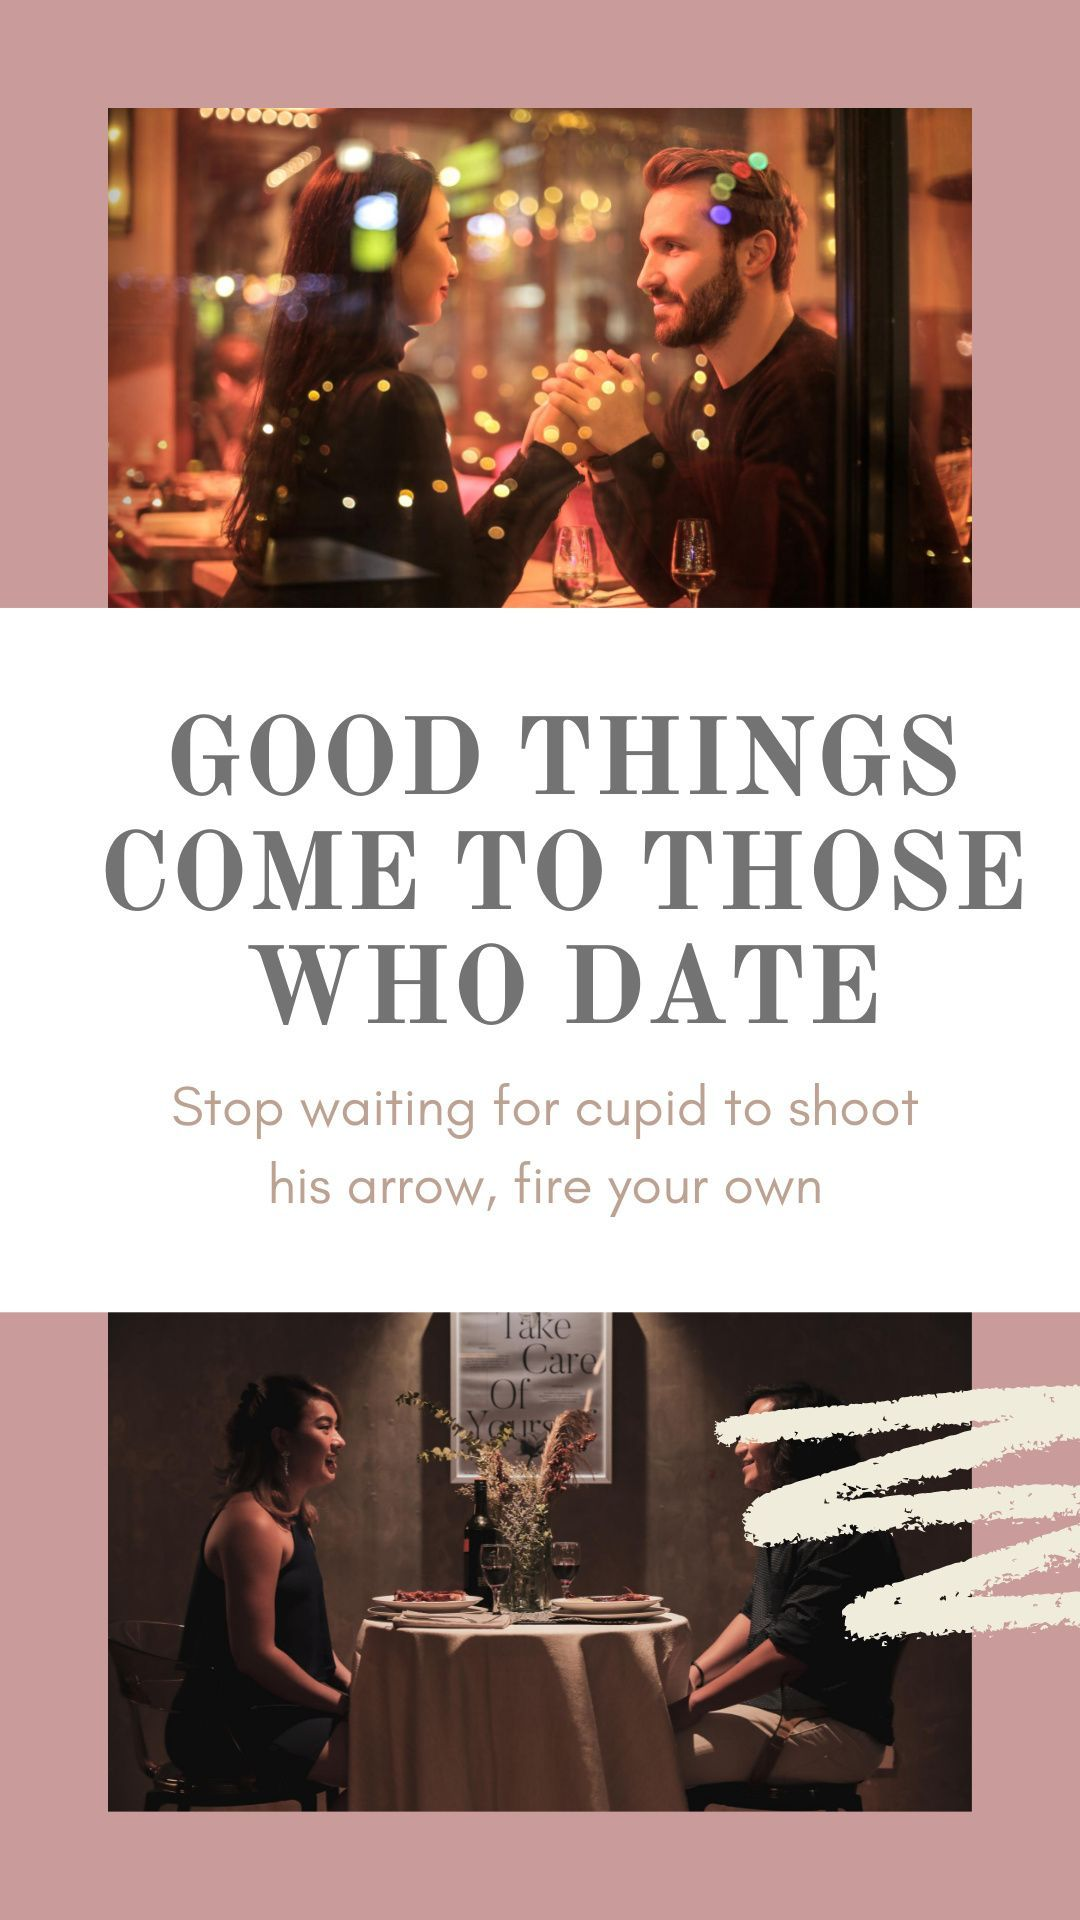 Dating advice. How to find a relationship. Dating app advice. Why it's important to date more! Date night tips. #datenight #singlelife #datingapps #bumble #hinge #tinder